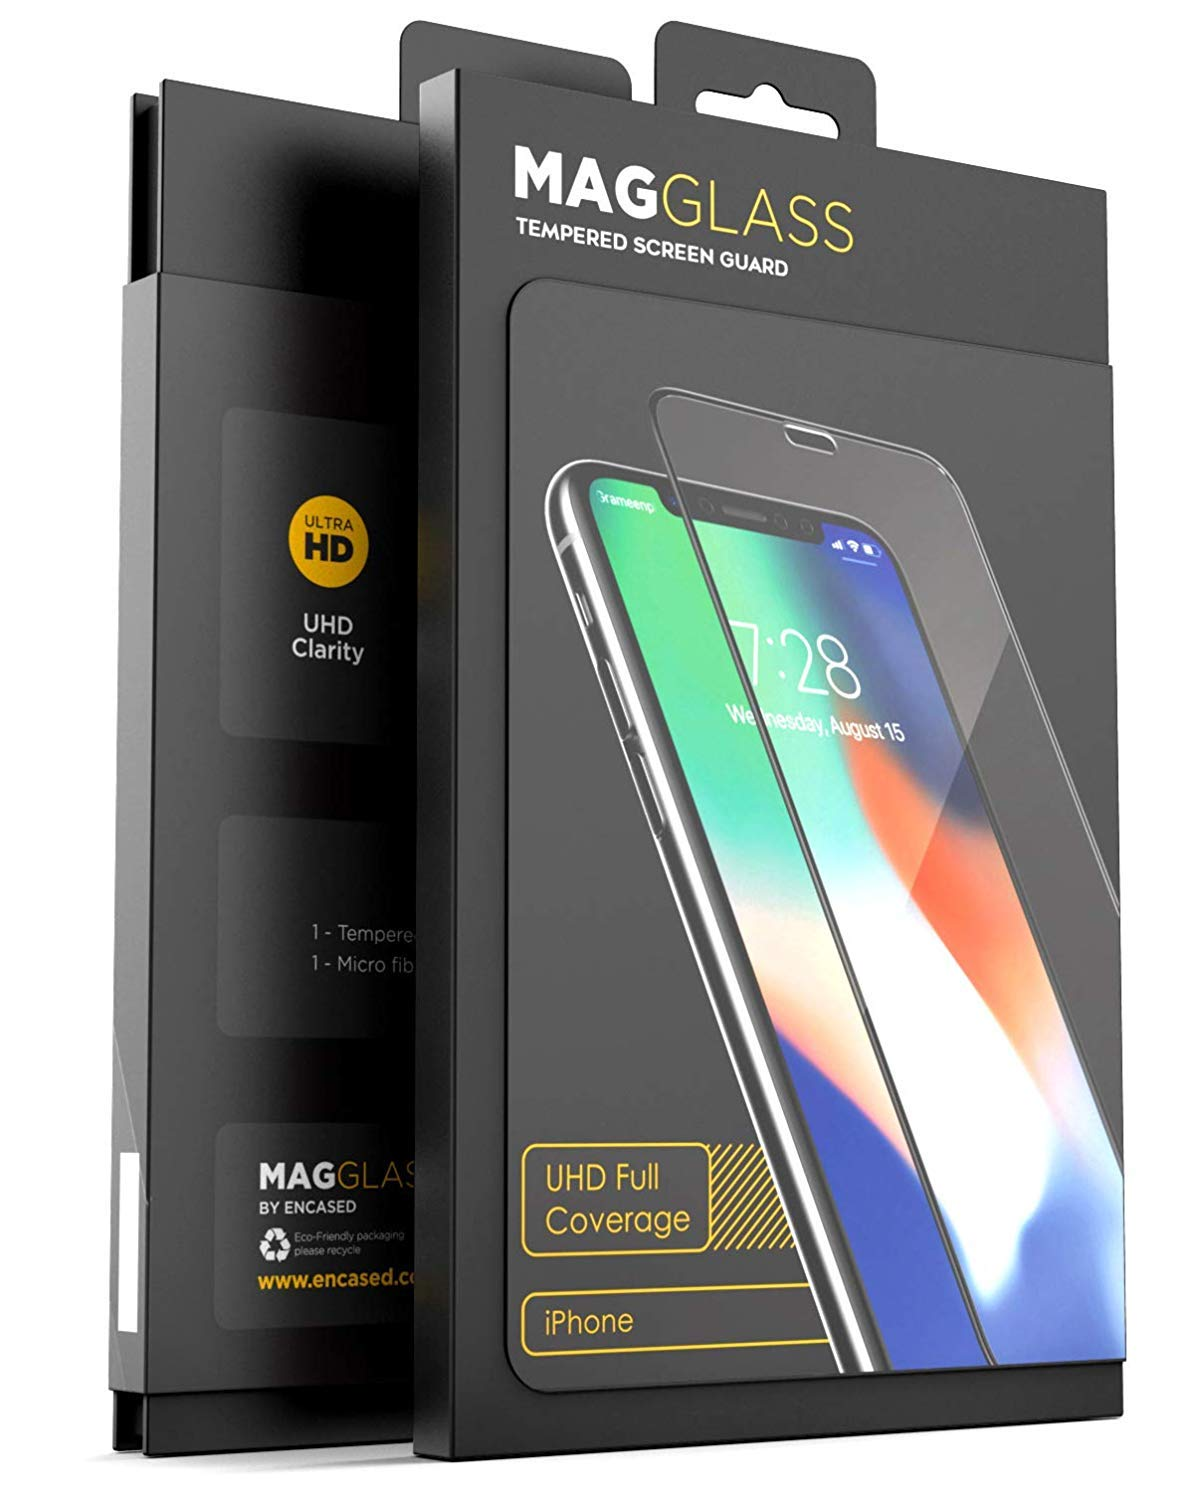 [Case Compatible] iPhone X Tempered Glass Screen Protector, MagGLASS XT90 Reinforced Screen Guard w/Pixel Grid Technology (Scratchproof/Shatterproof) (Includes Precision Applicator)